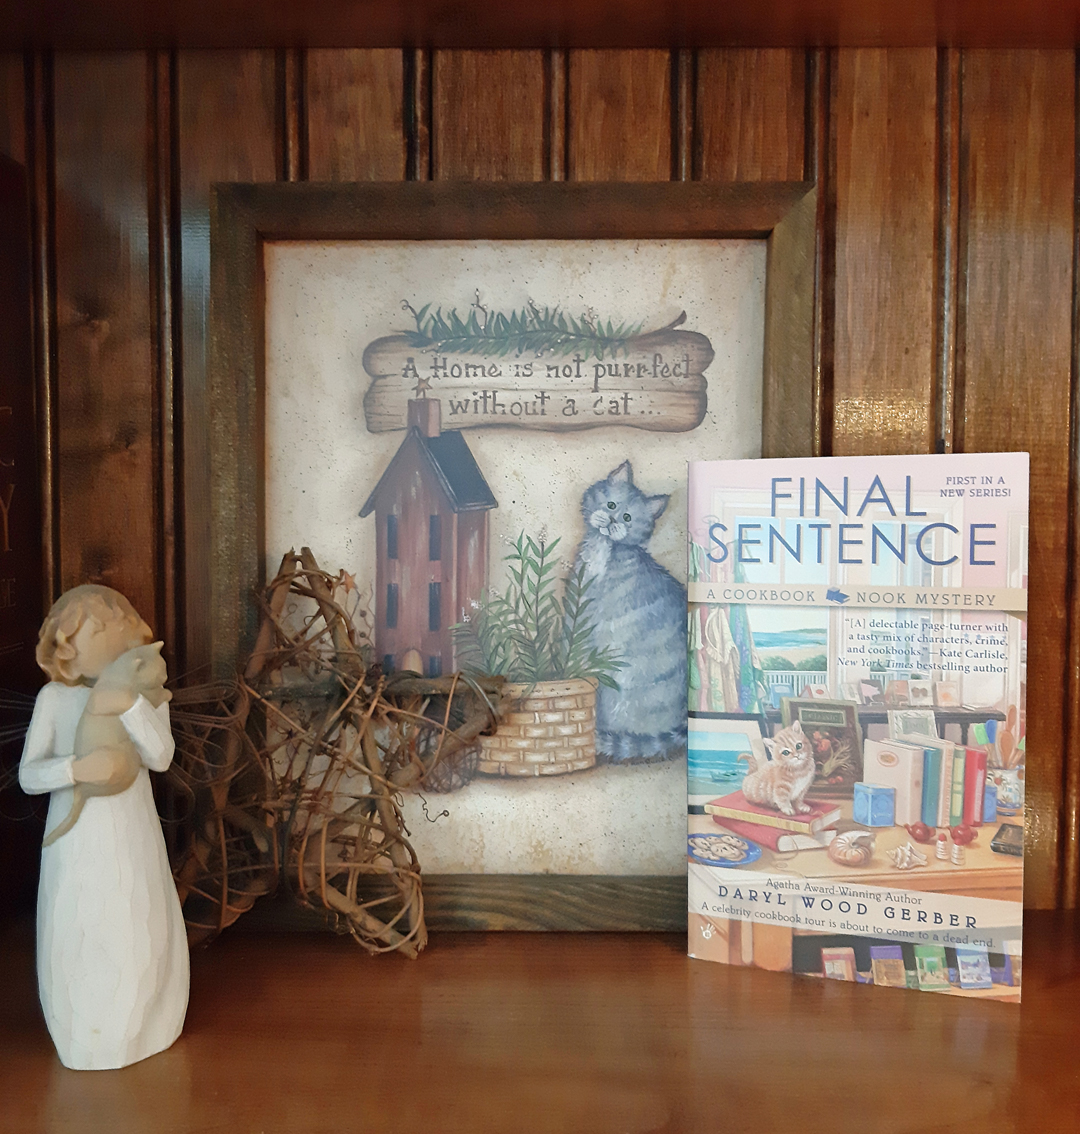 Daryl Wood Gerber – Final Sentence (A Cookbook Nook Mystery)